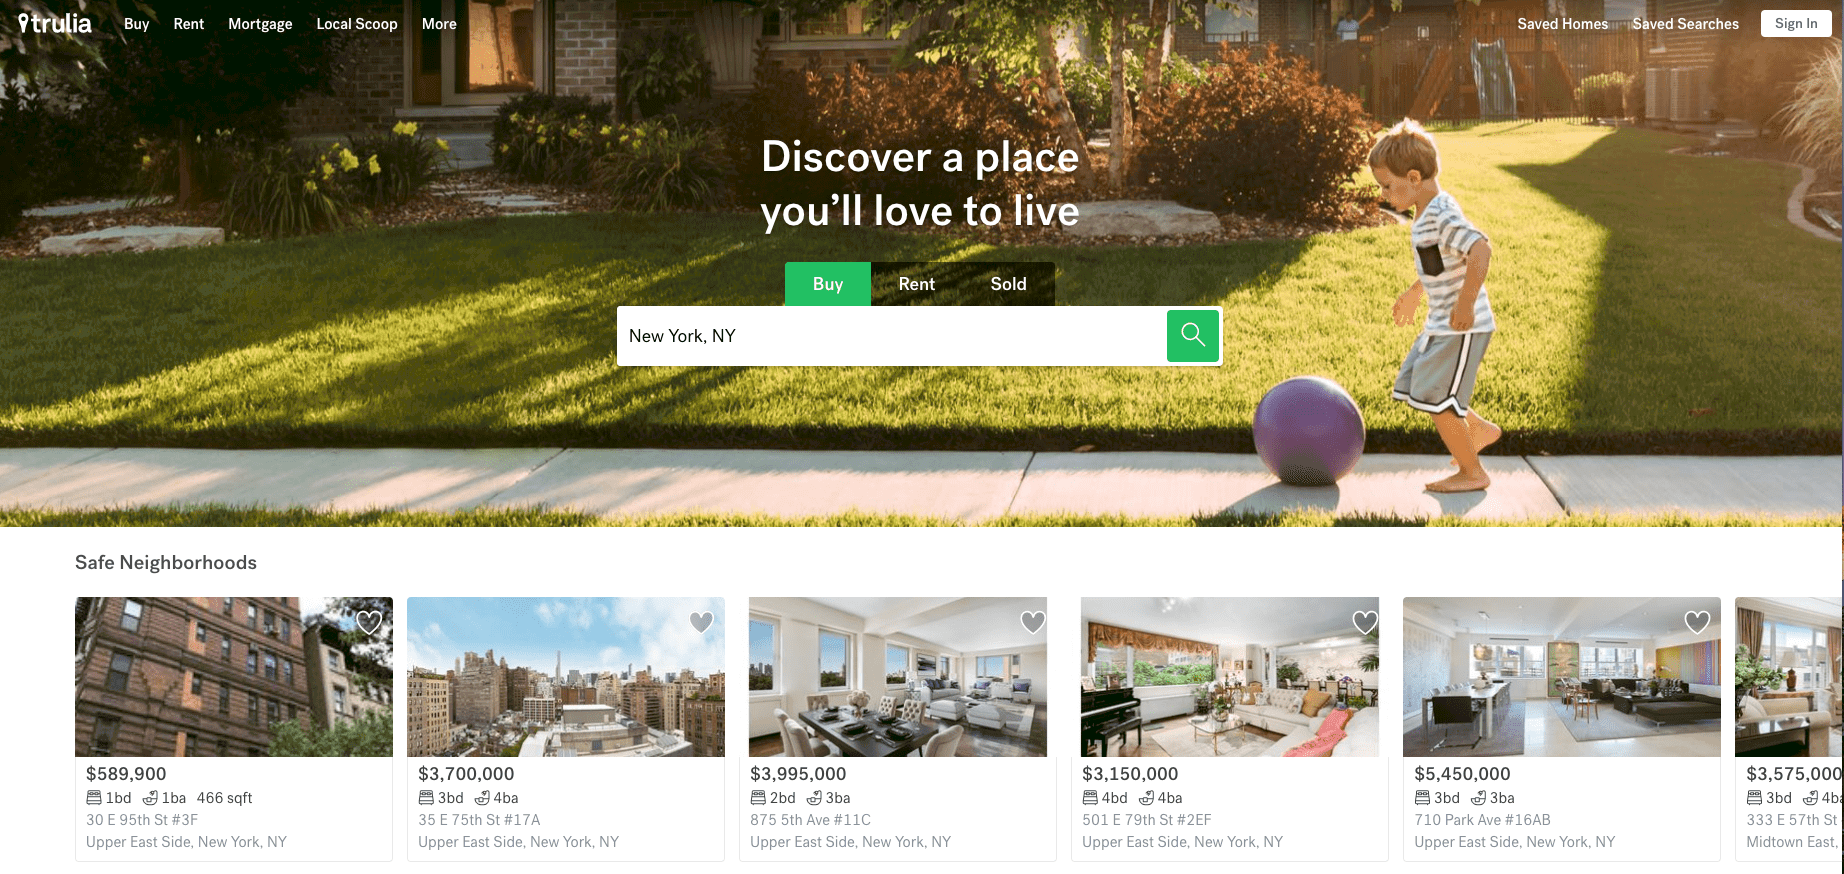 Trulia website home page as Zillow altnerative